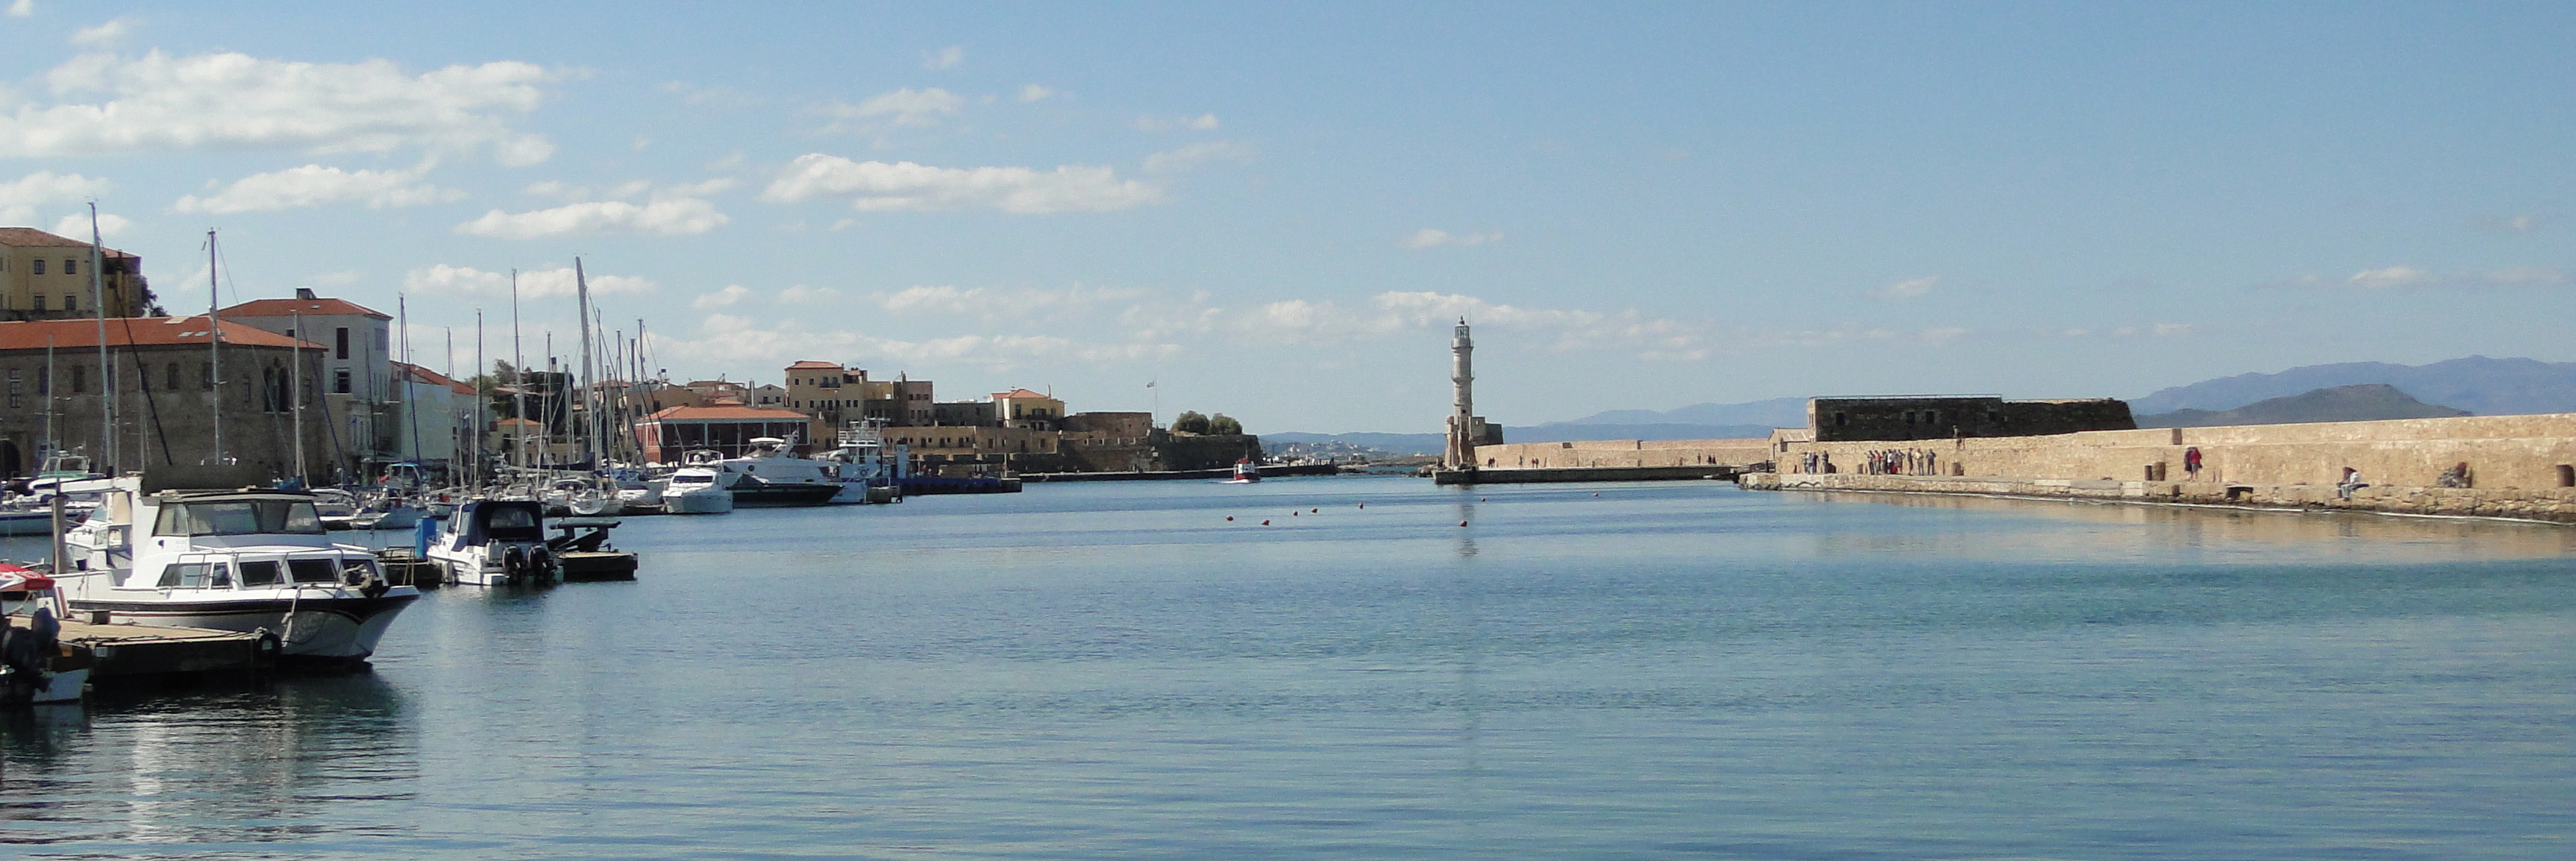 File:Chania Old Harbour 01.jpg - Wikimedia Commons